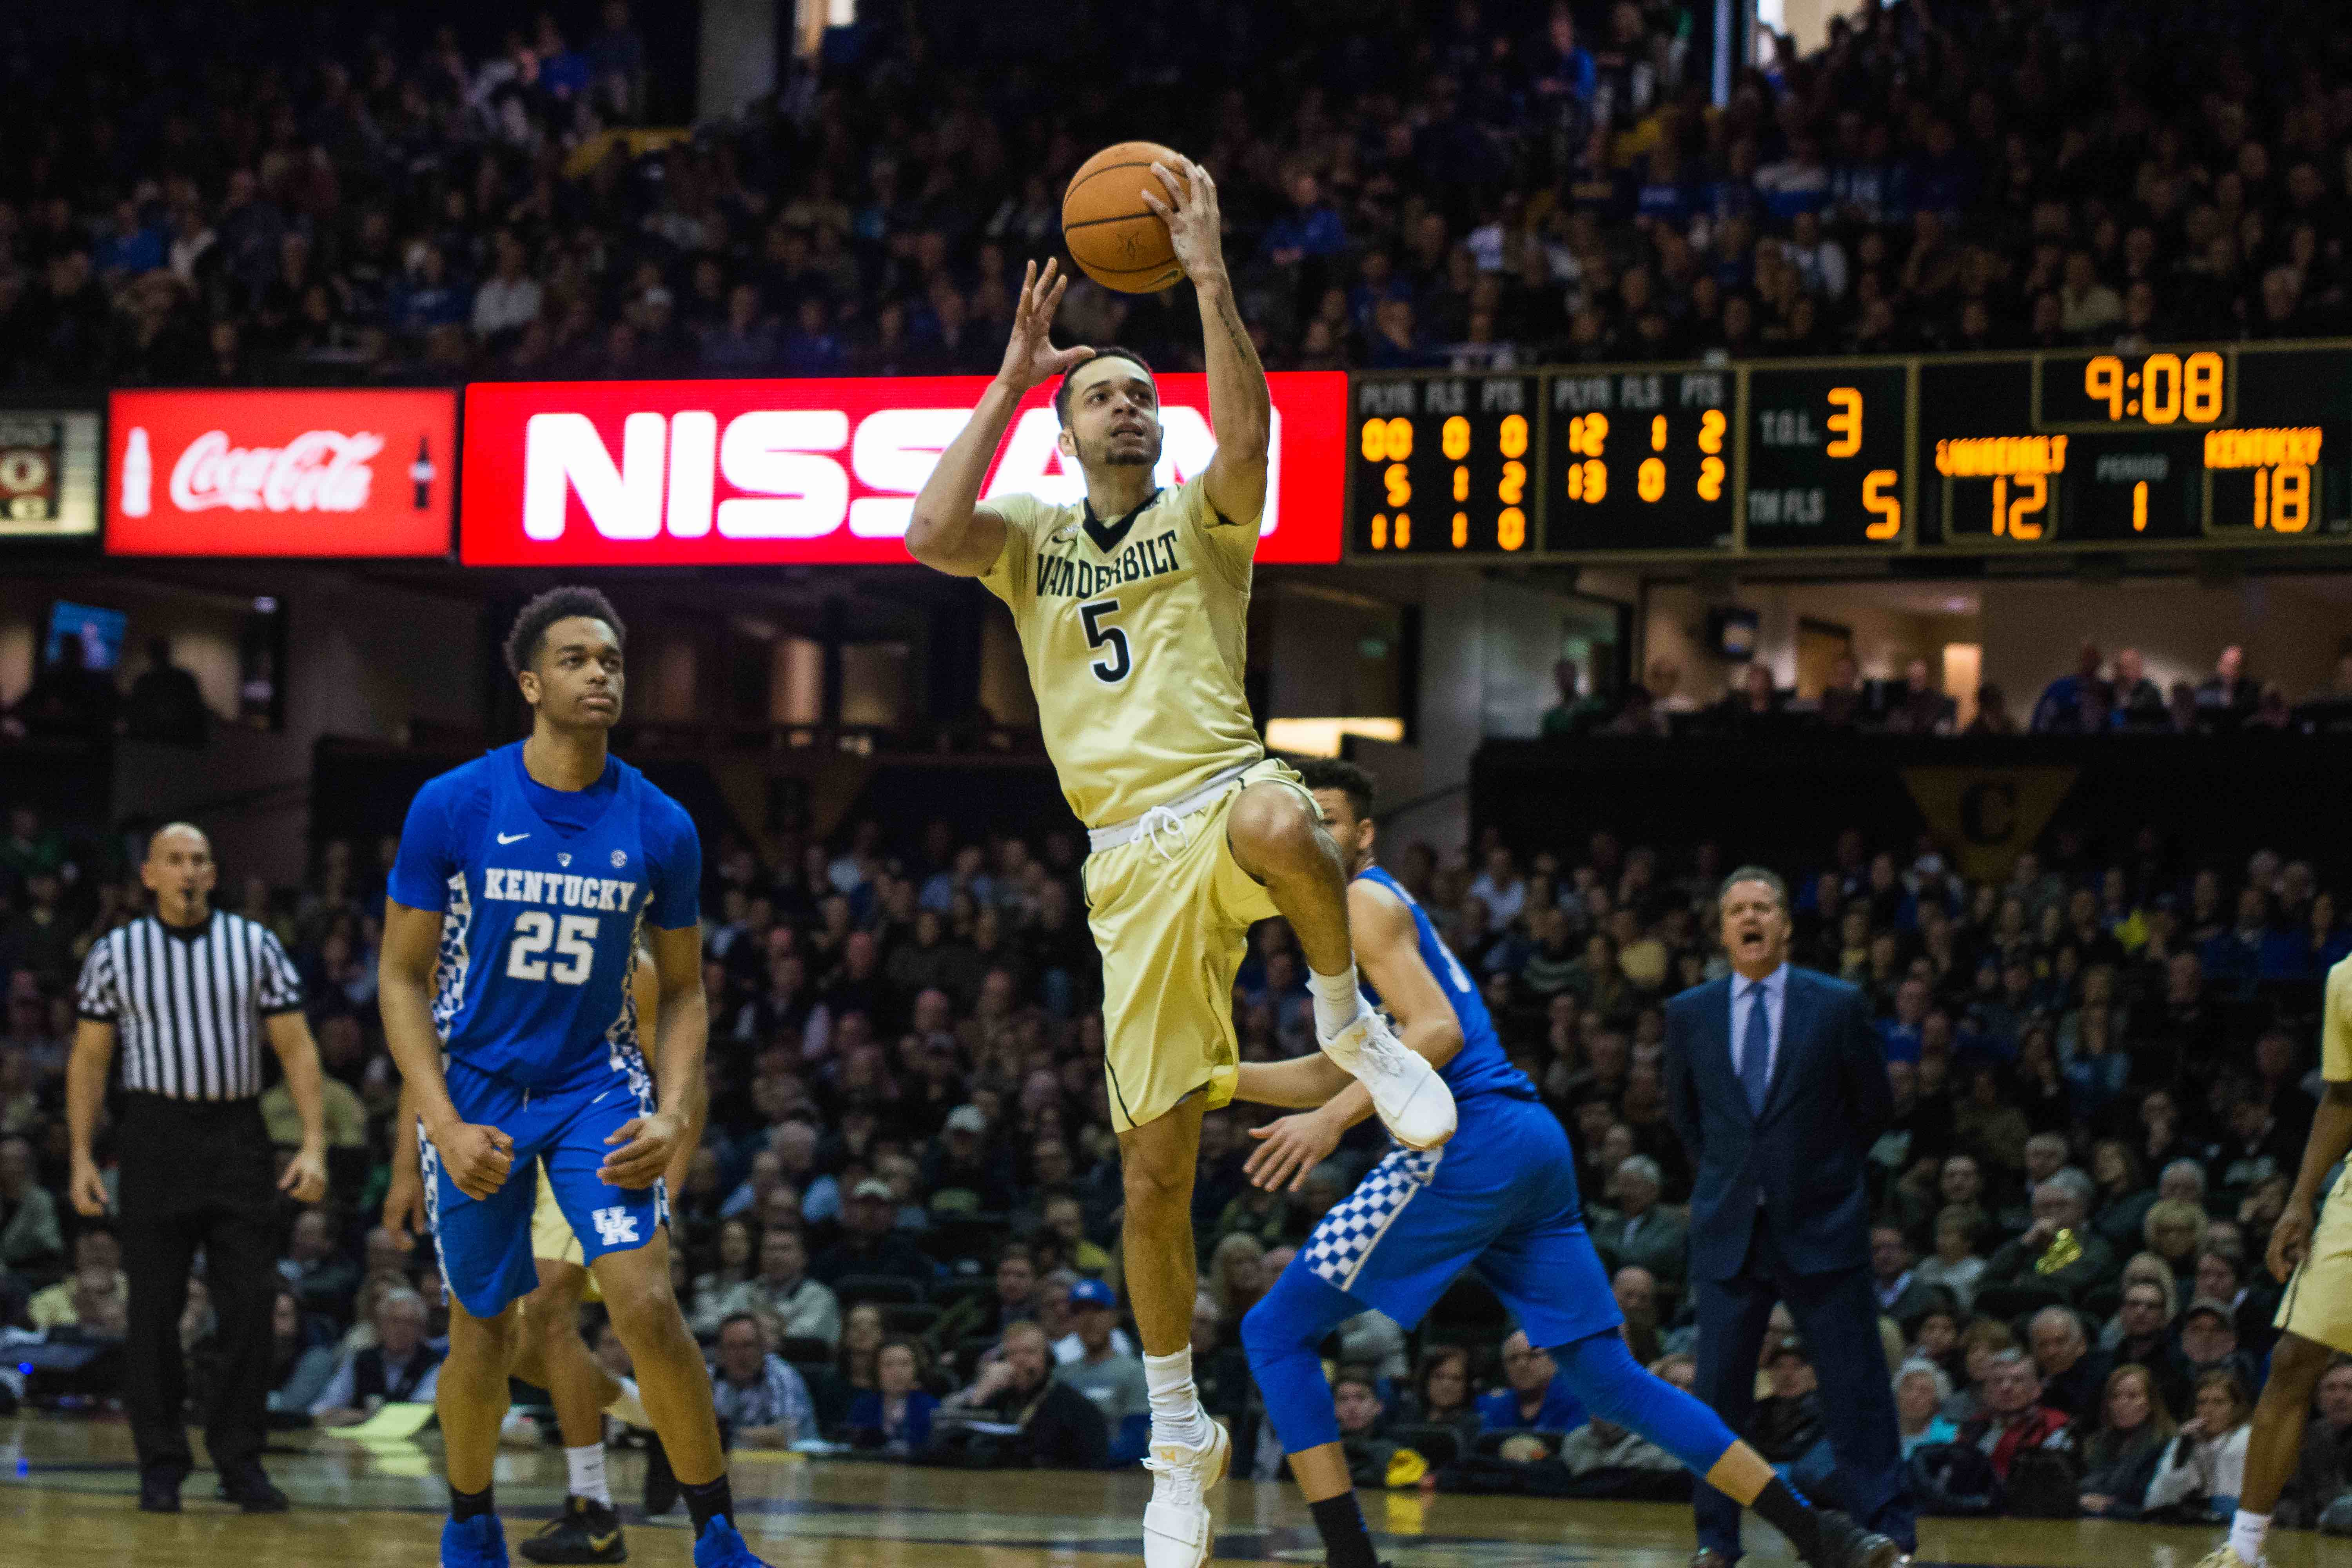 The Vanderbilt Commodores fall to the University of Kentucky Wildcats on Saturday, January 13th, 2018. (Photo by Brent Szklaruk)